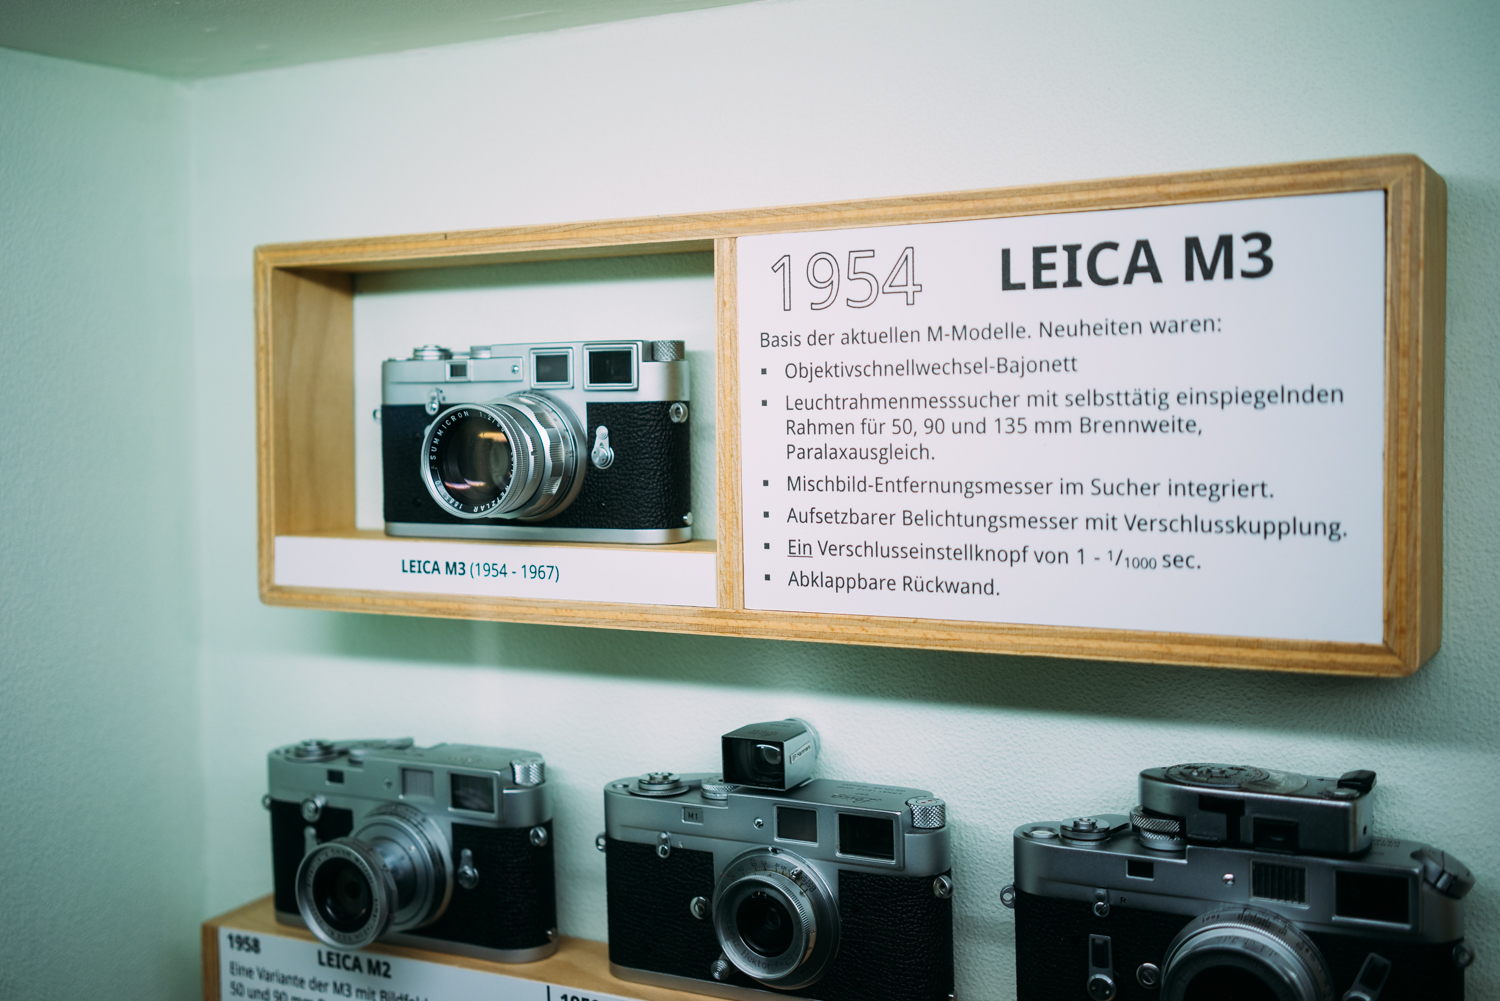 The Leica display was something to drool over.